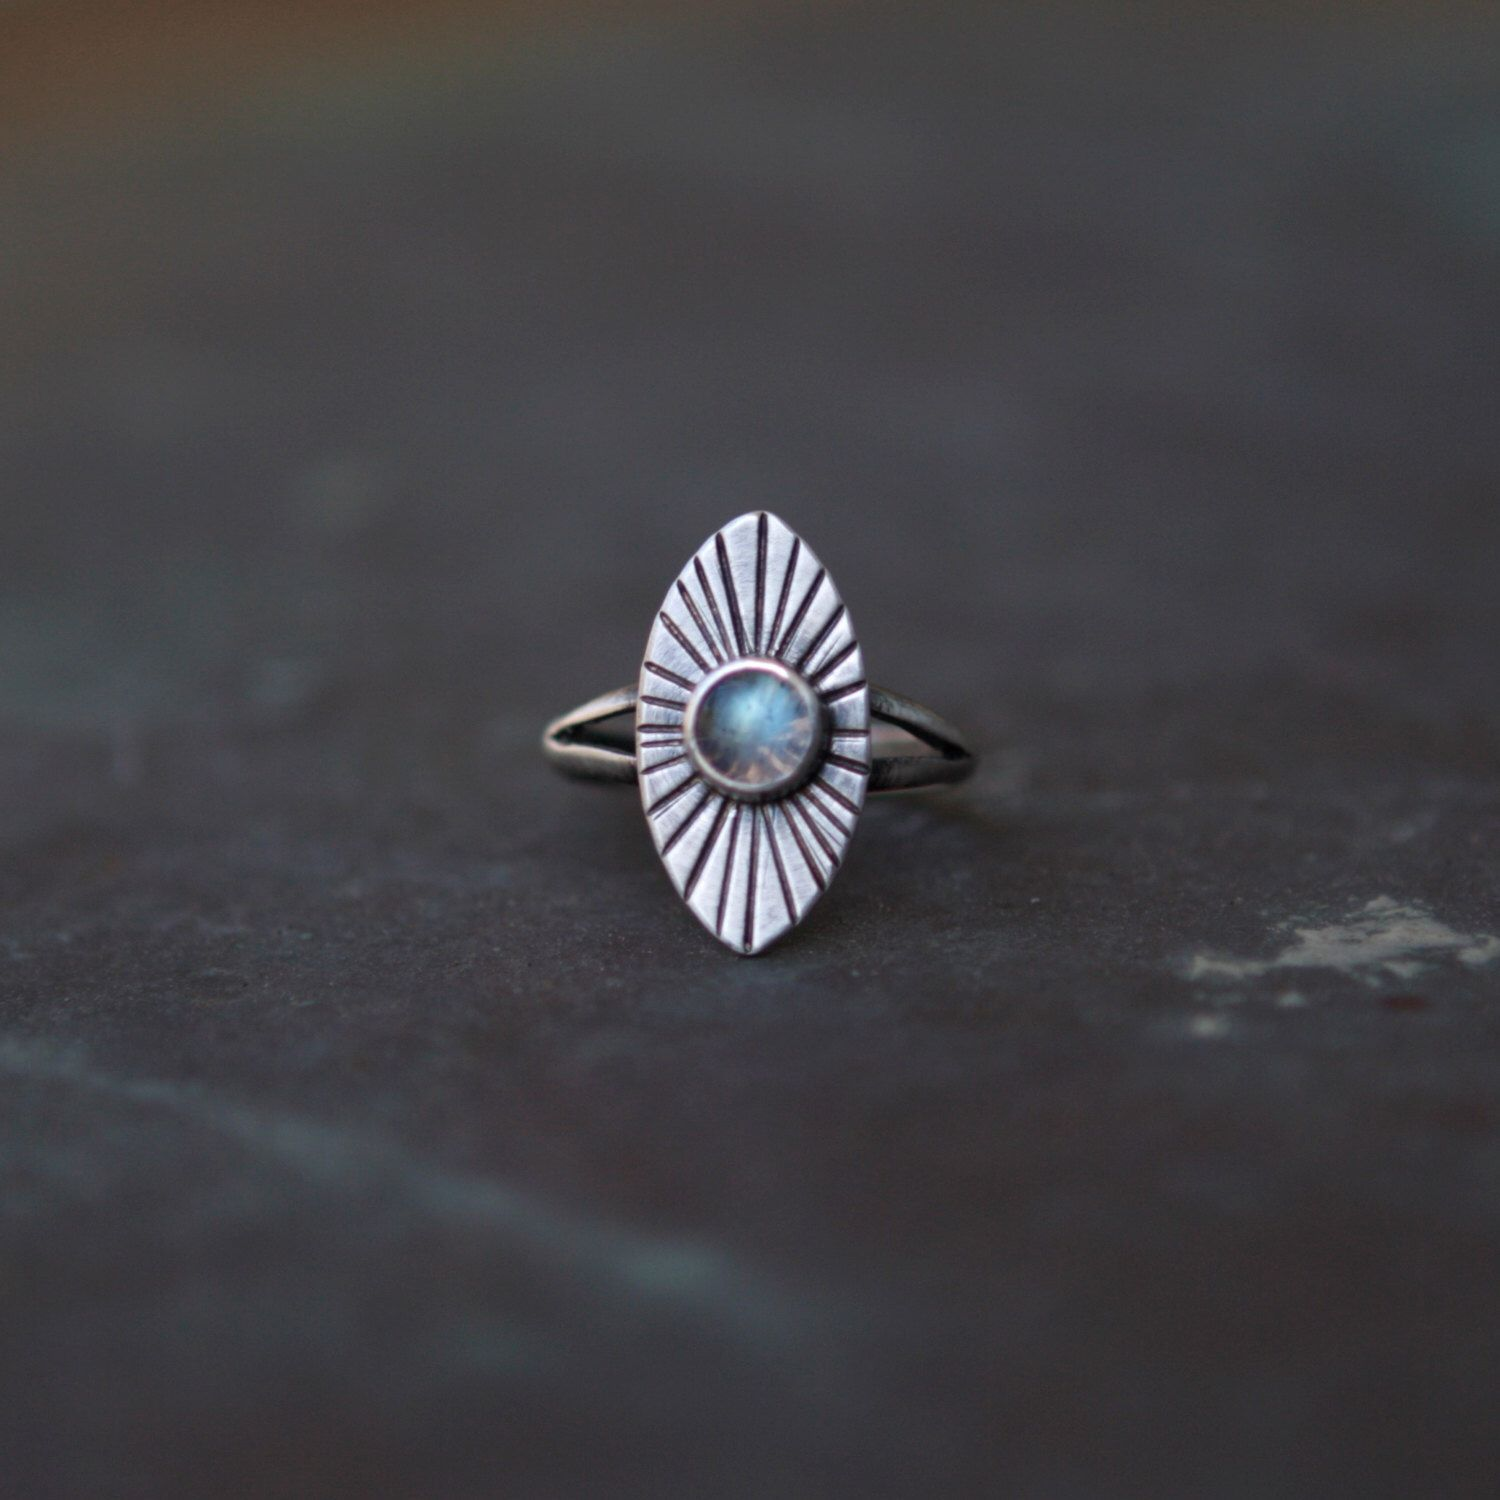 Labradorite Radial Ring - Radiant Ring - Sterling Silver Labradorite Ring - Blue Labradorite - Marquise Ring - Size 4.75 by JayCuneo on Etsy https://www.etsy.com/listing/290178131/labradorite-radial-ring-radiant-ring